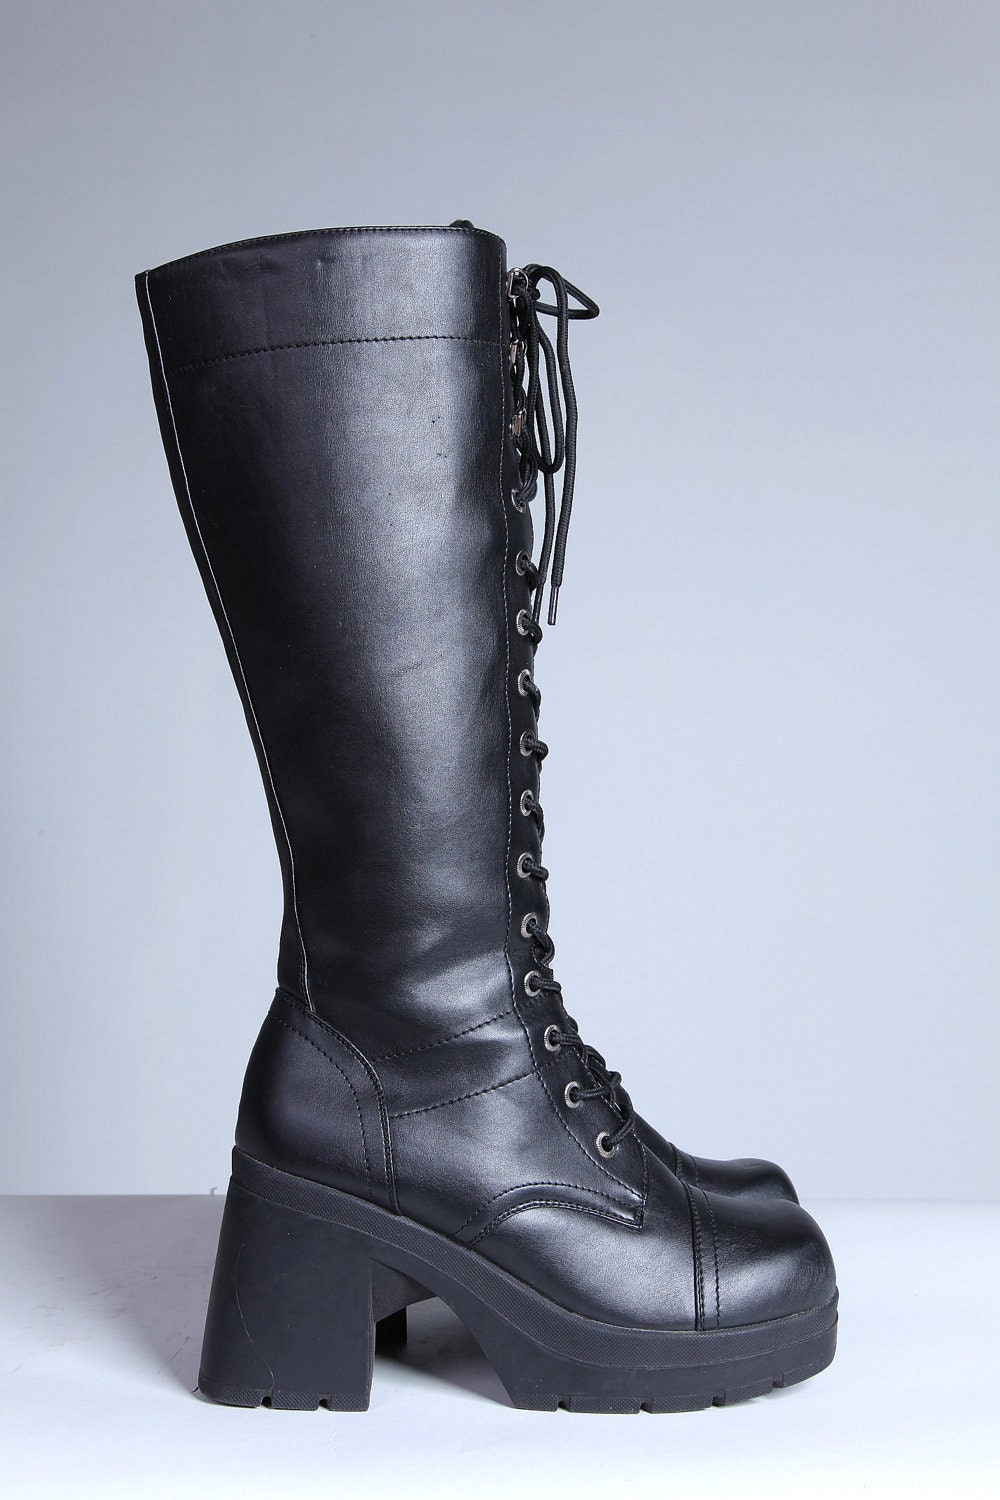 knee high chunky heeled lace up combat boots 11 by